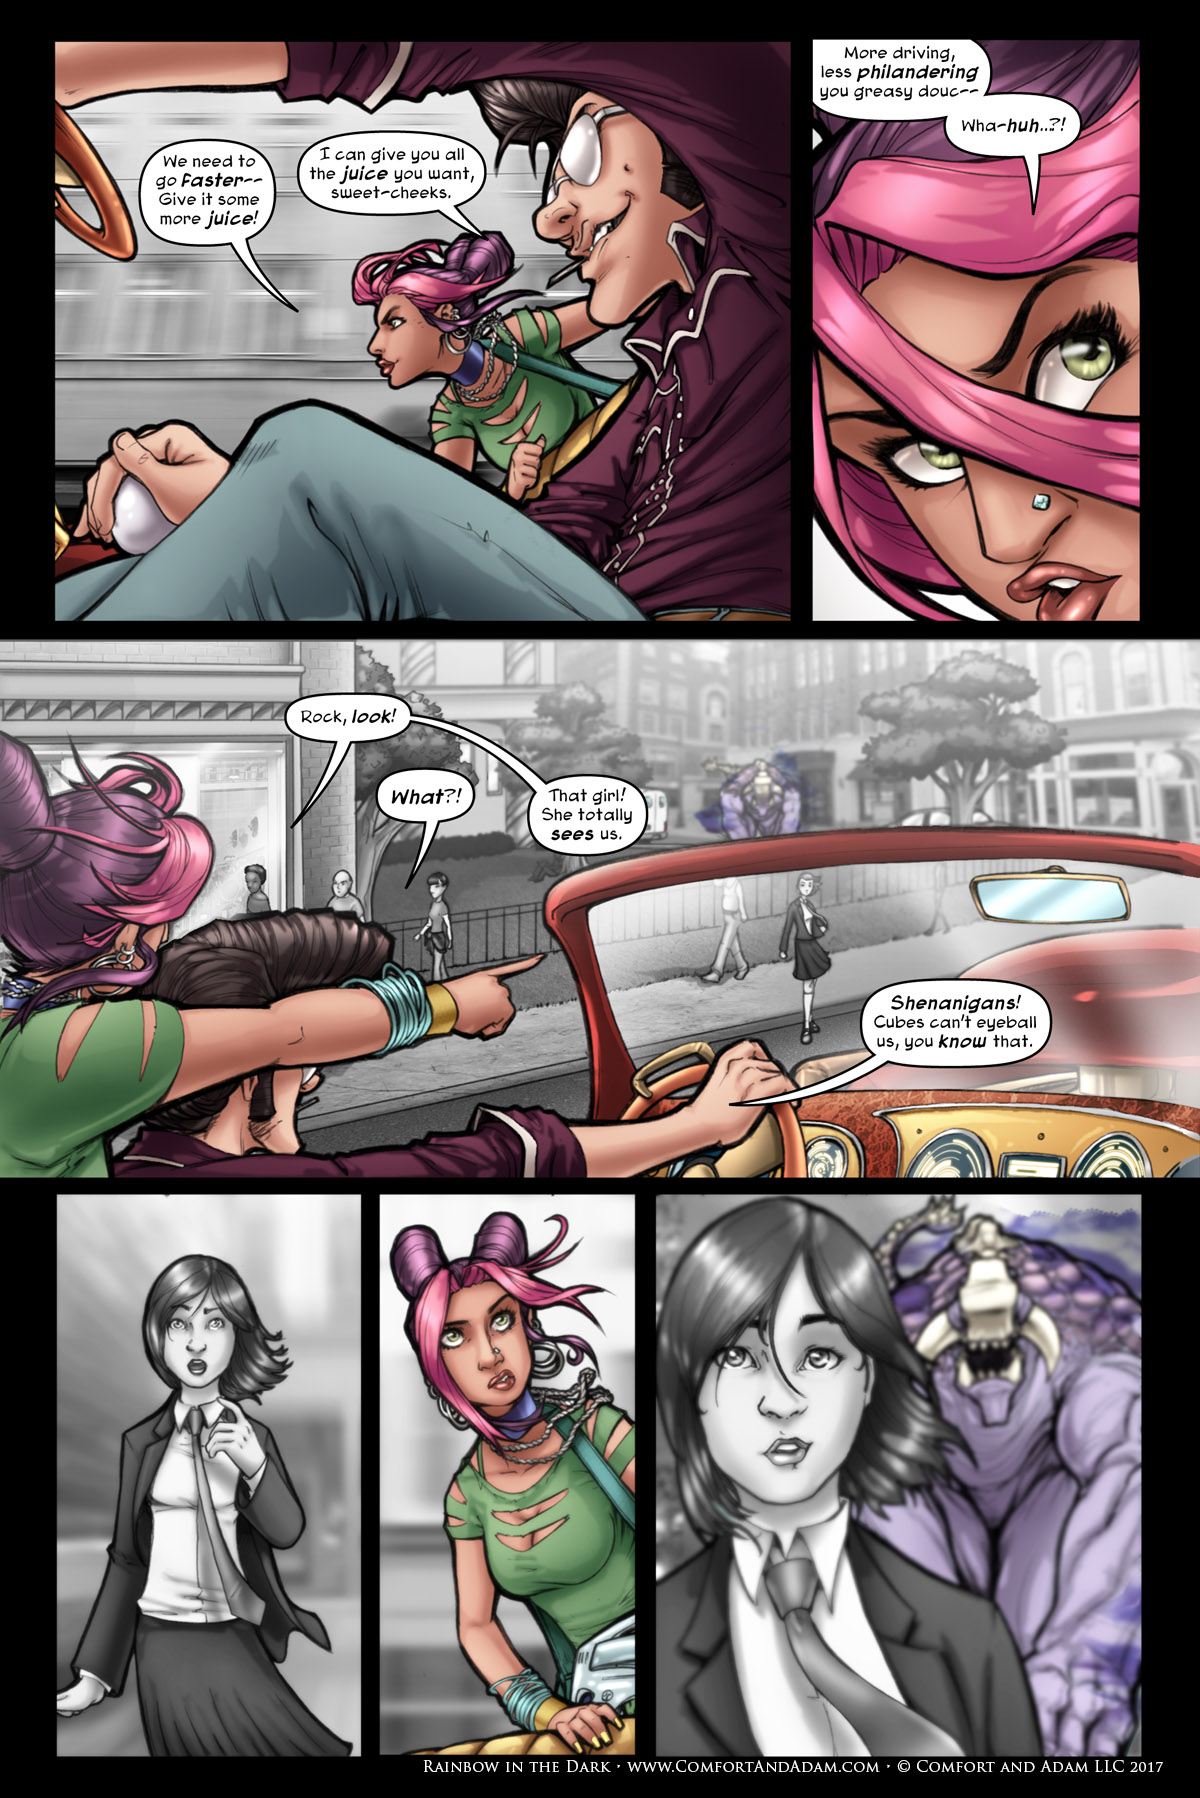 Rainbow in the Dark #1 pg. 10: Who's That Girl?